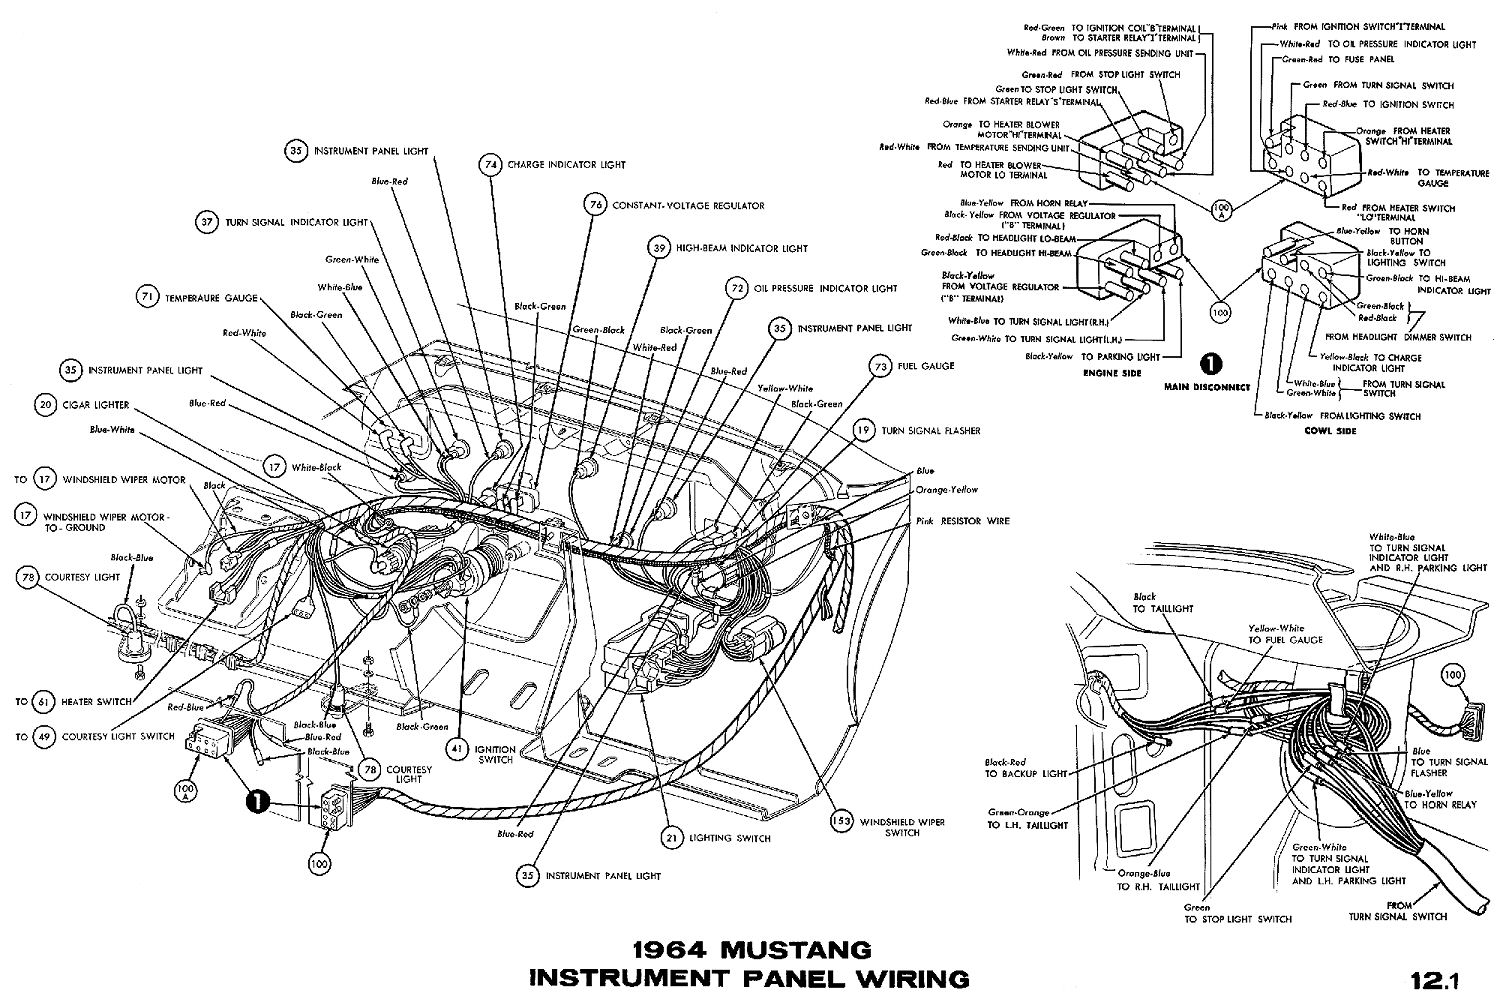 1994 jeep wrangler headlight wiring diagram with 1964 Mustang Wiring Diagrams on Jeep Liberty Tailgate Wiring Harness Diagram Wiring Diagrams also 1964 Mustang Wiring Diagrams additionally 93 Chevy 2500 Reverse Lights Wiring Diagram together with 1052313 Steering Column Wiring Colors as well Discussion T15900 ds579881.